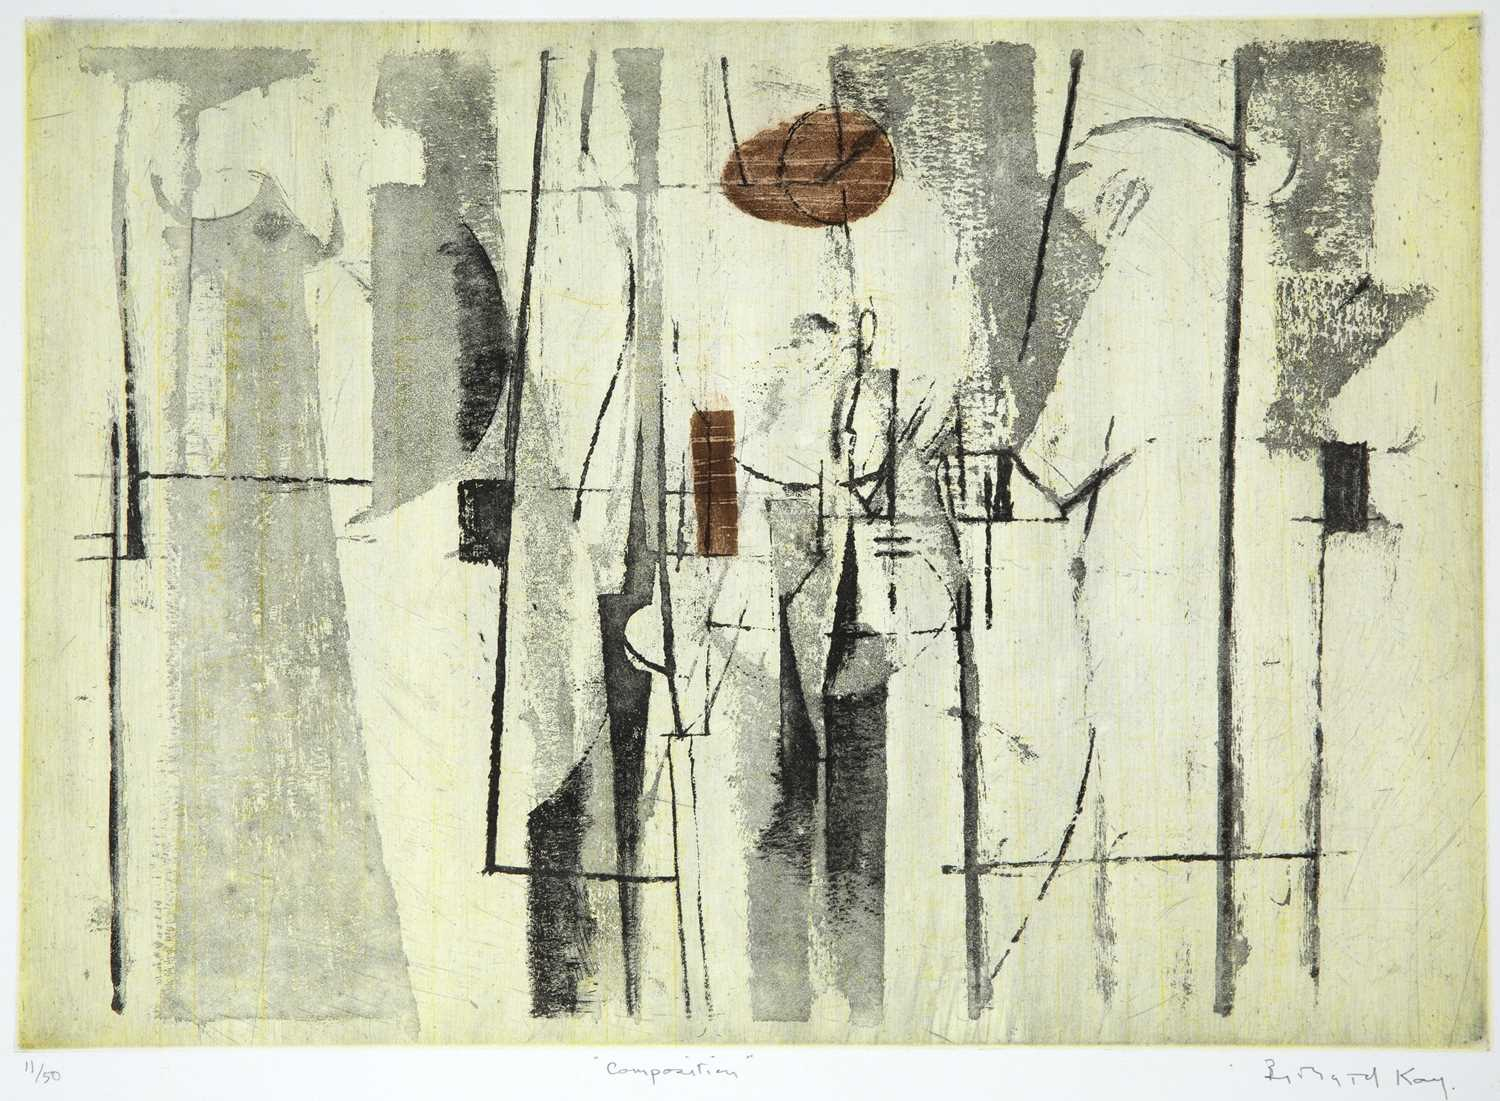 Bernard Kay (1927-2021) Composition signed and inscribed in pencil etching and aquatint 33 x 47cm.